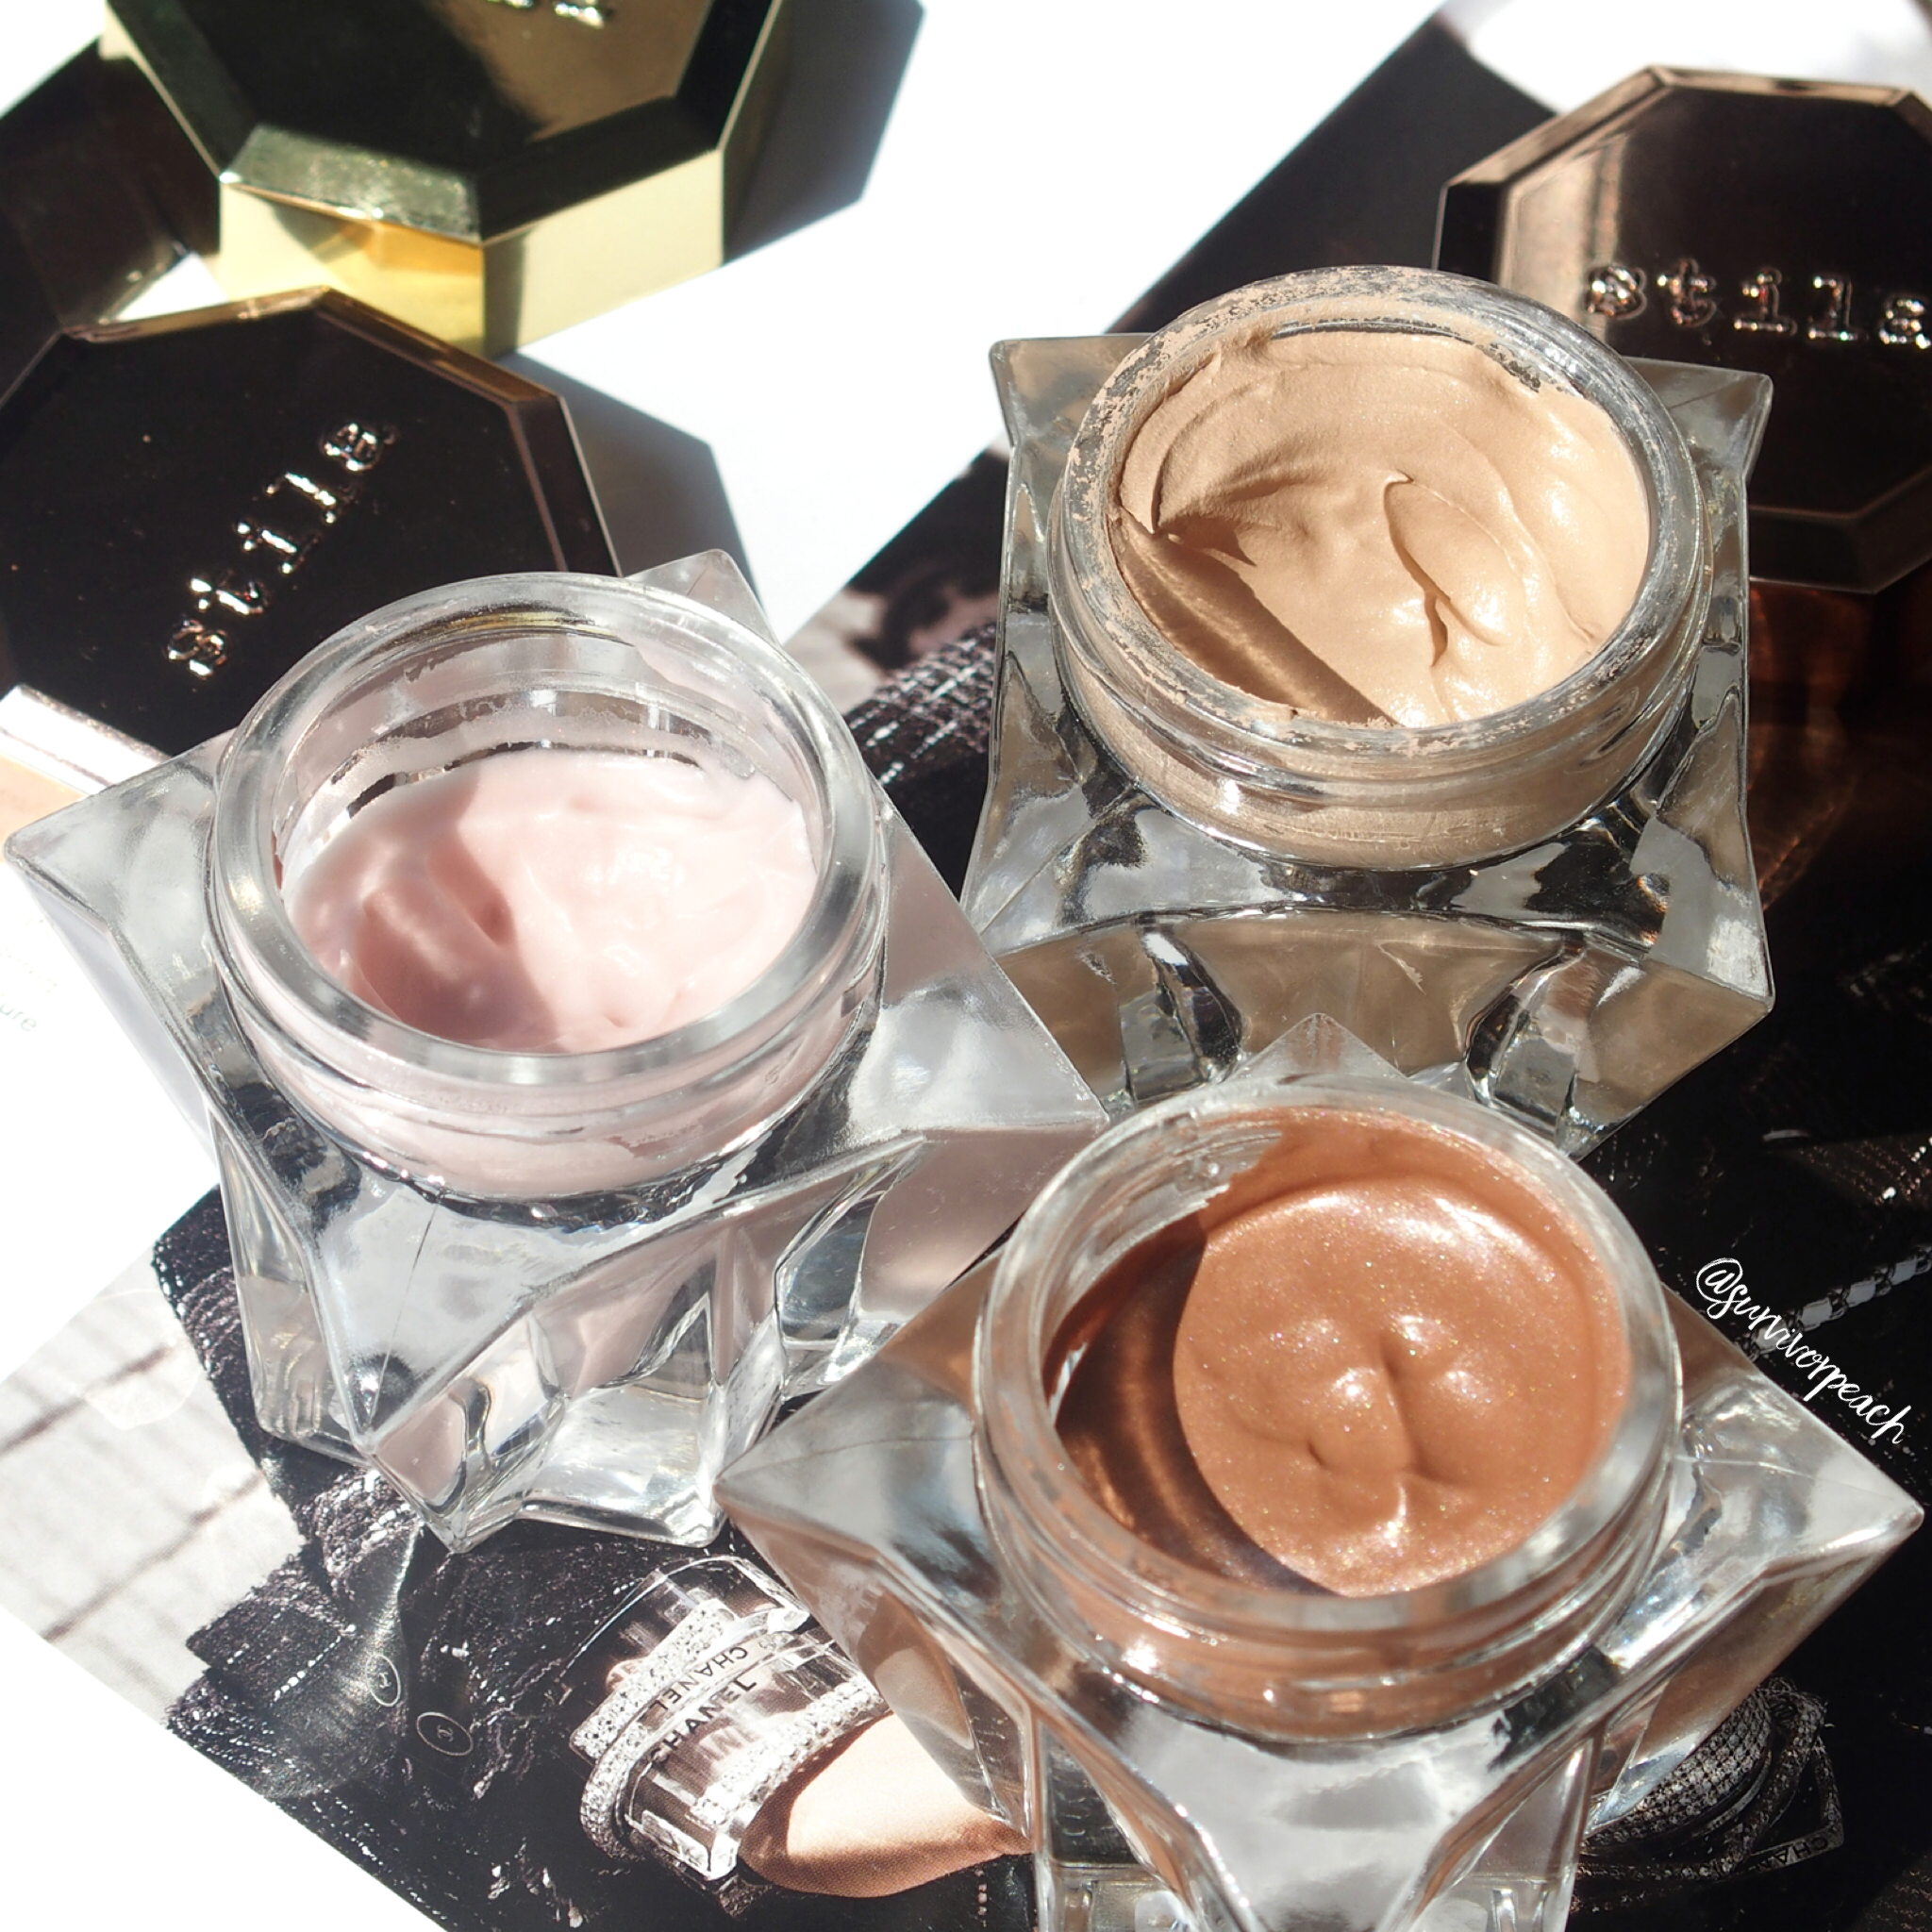 Stila Lingerie Soufflé Skin Perfecting Color and Perfecting Primers- Sheer Illumination and Sunkissed